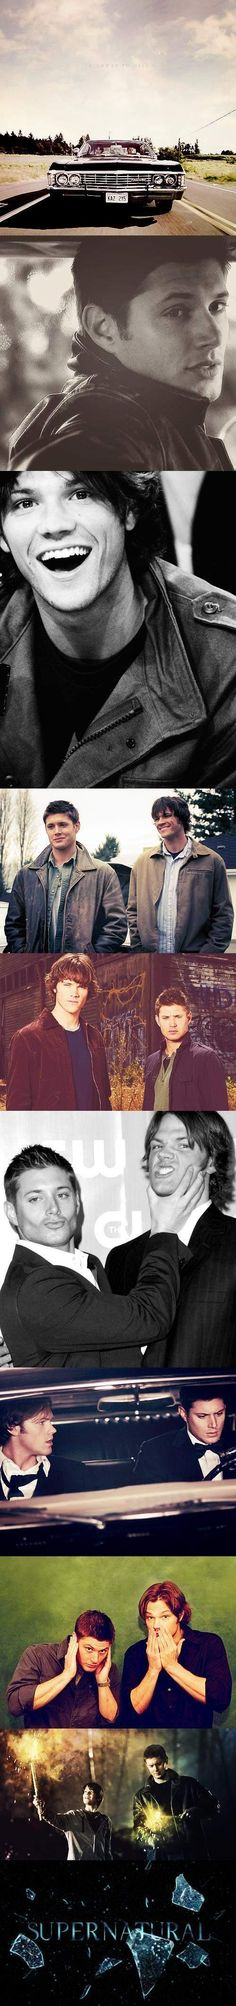 All these pictures... Especially the third one down of Jared and the second one down of Jensen. Sigh.